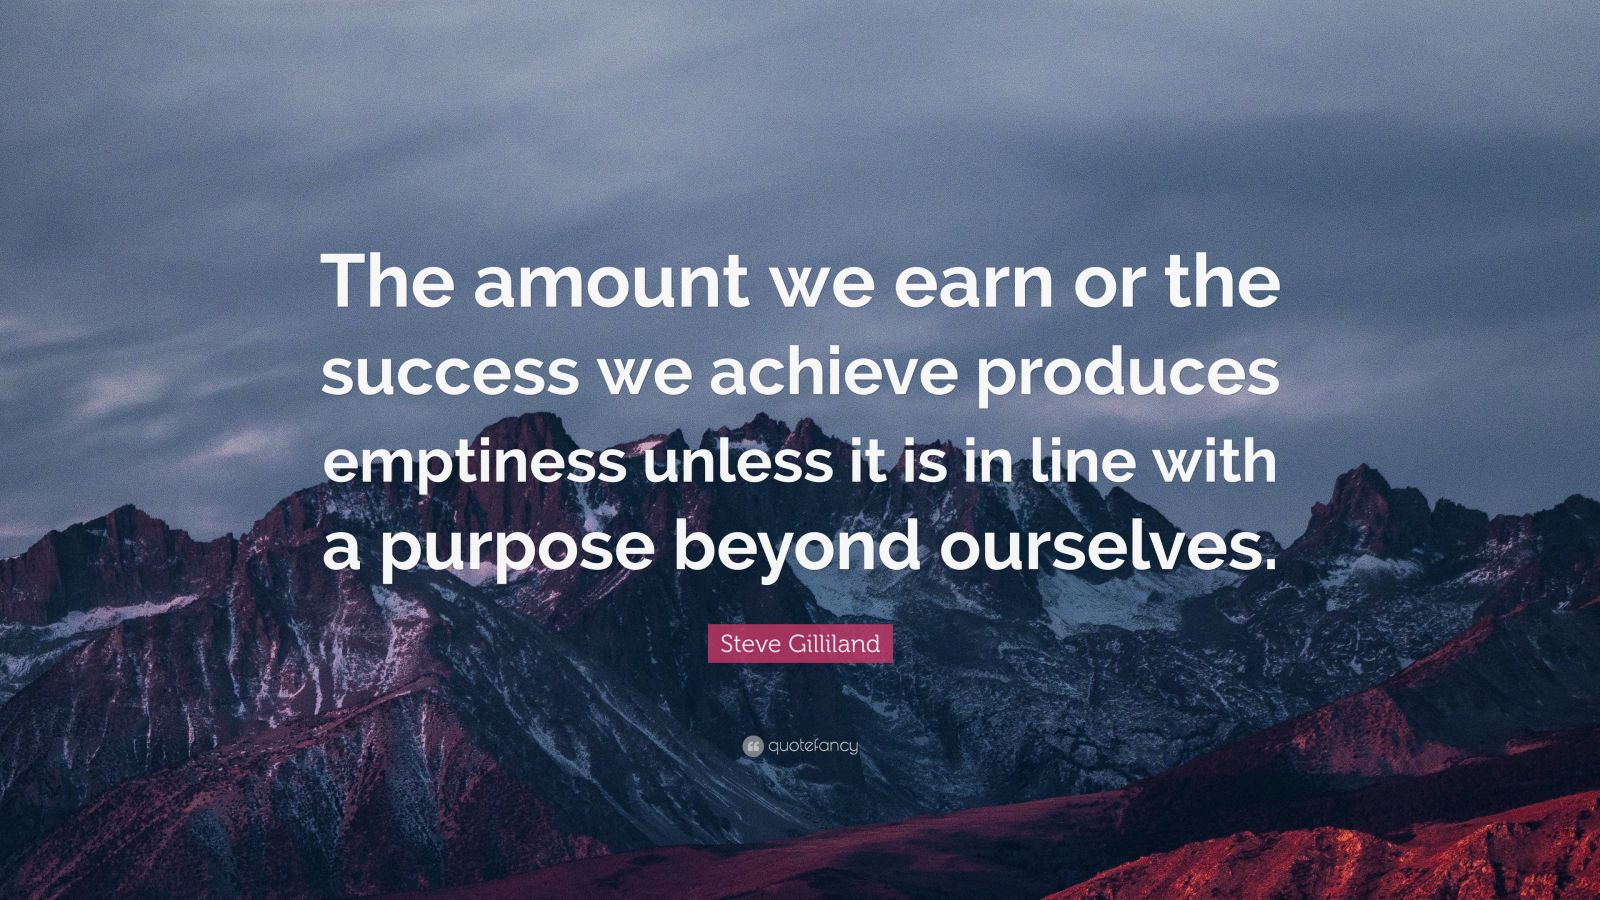 """Steve Gilliland Quote: """"The amount we earn or the success we achieve produces emptiness unless it is in line with a purpose beyond ourselves."""""""